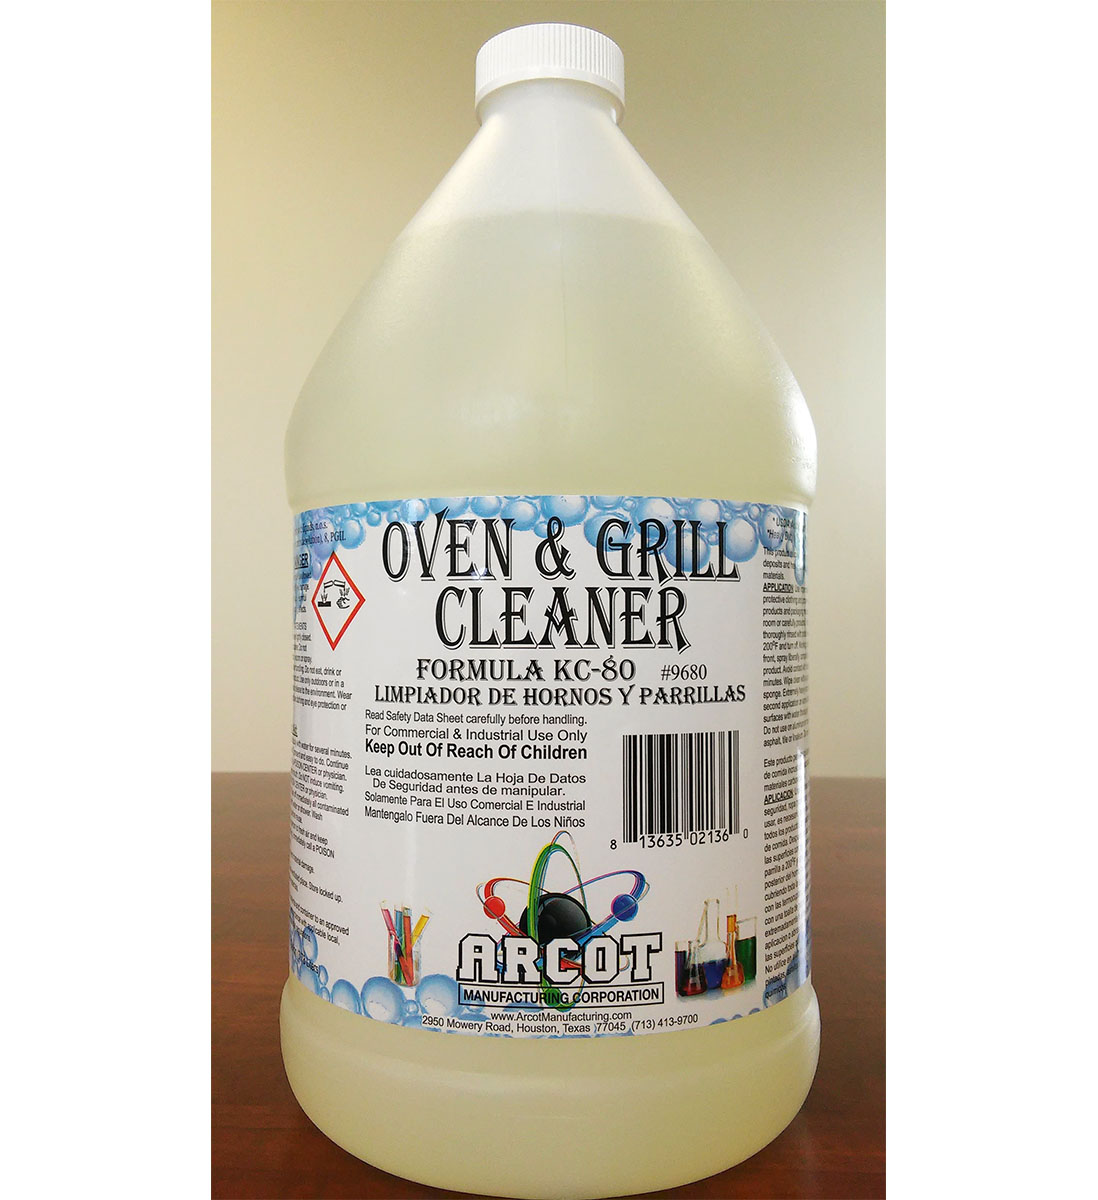 Oven & Grill Cleaner Formula KC-80